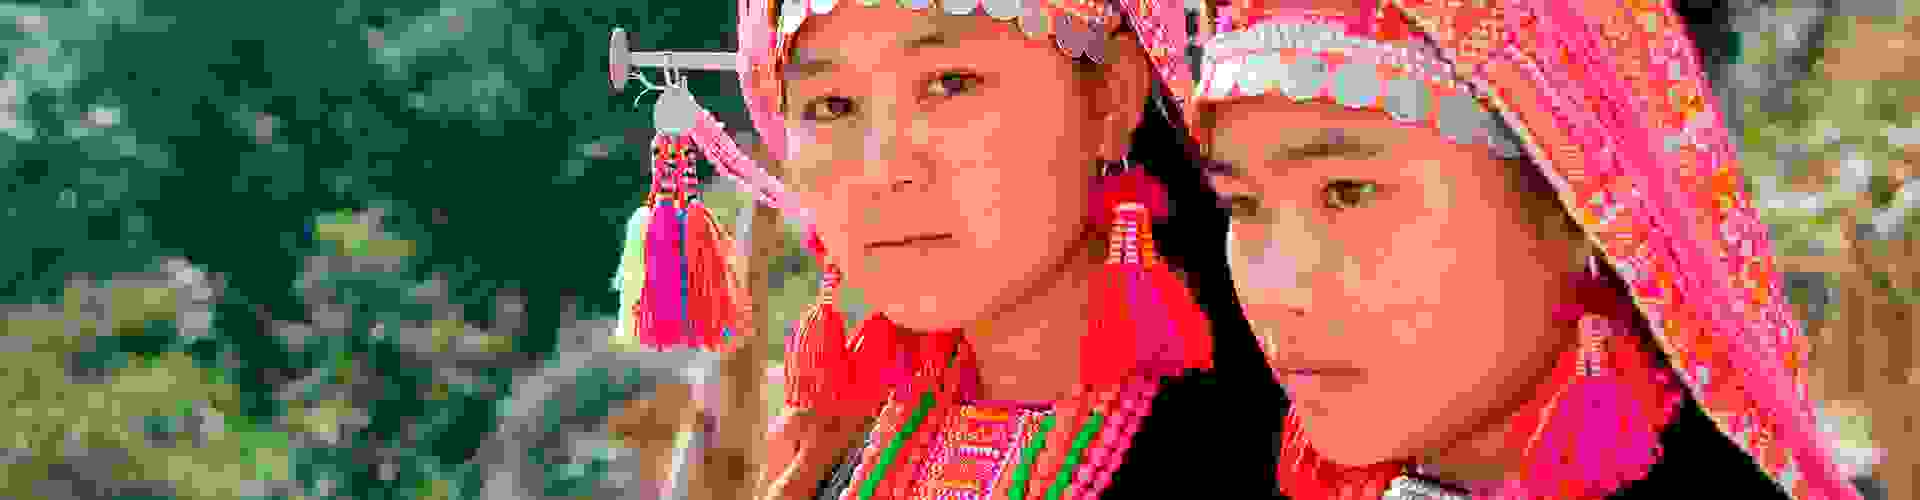 Akha-woman-in-Laos.jpg